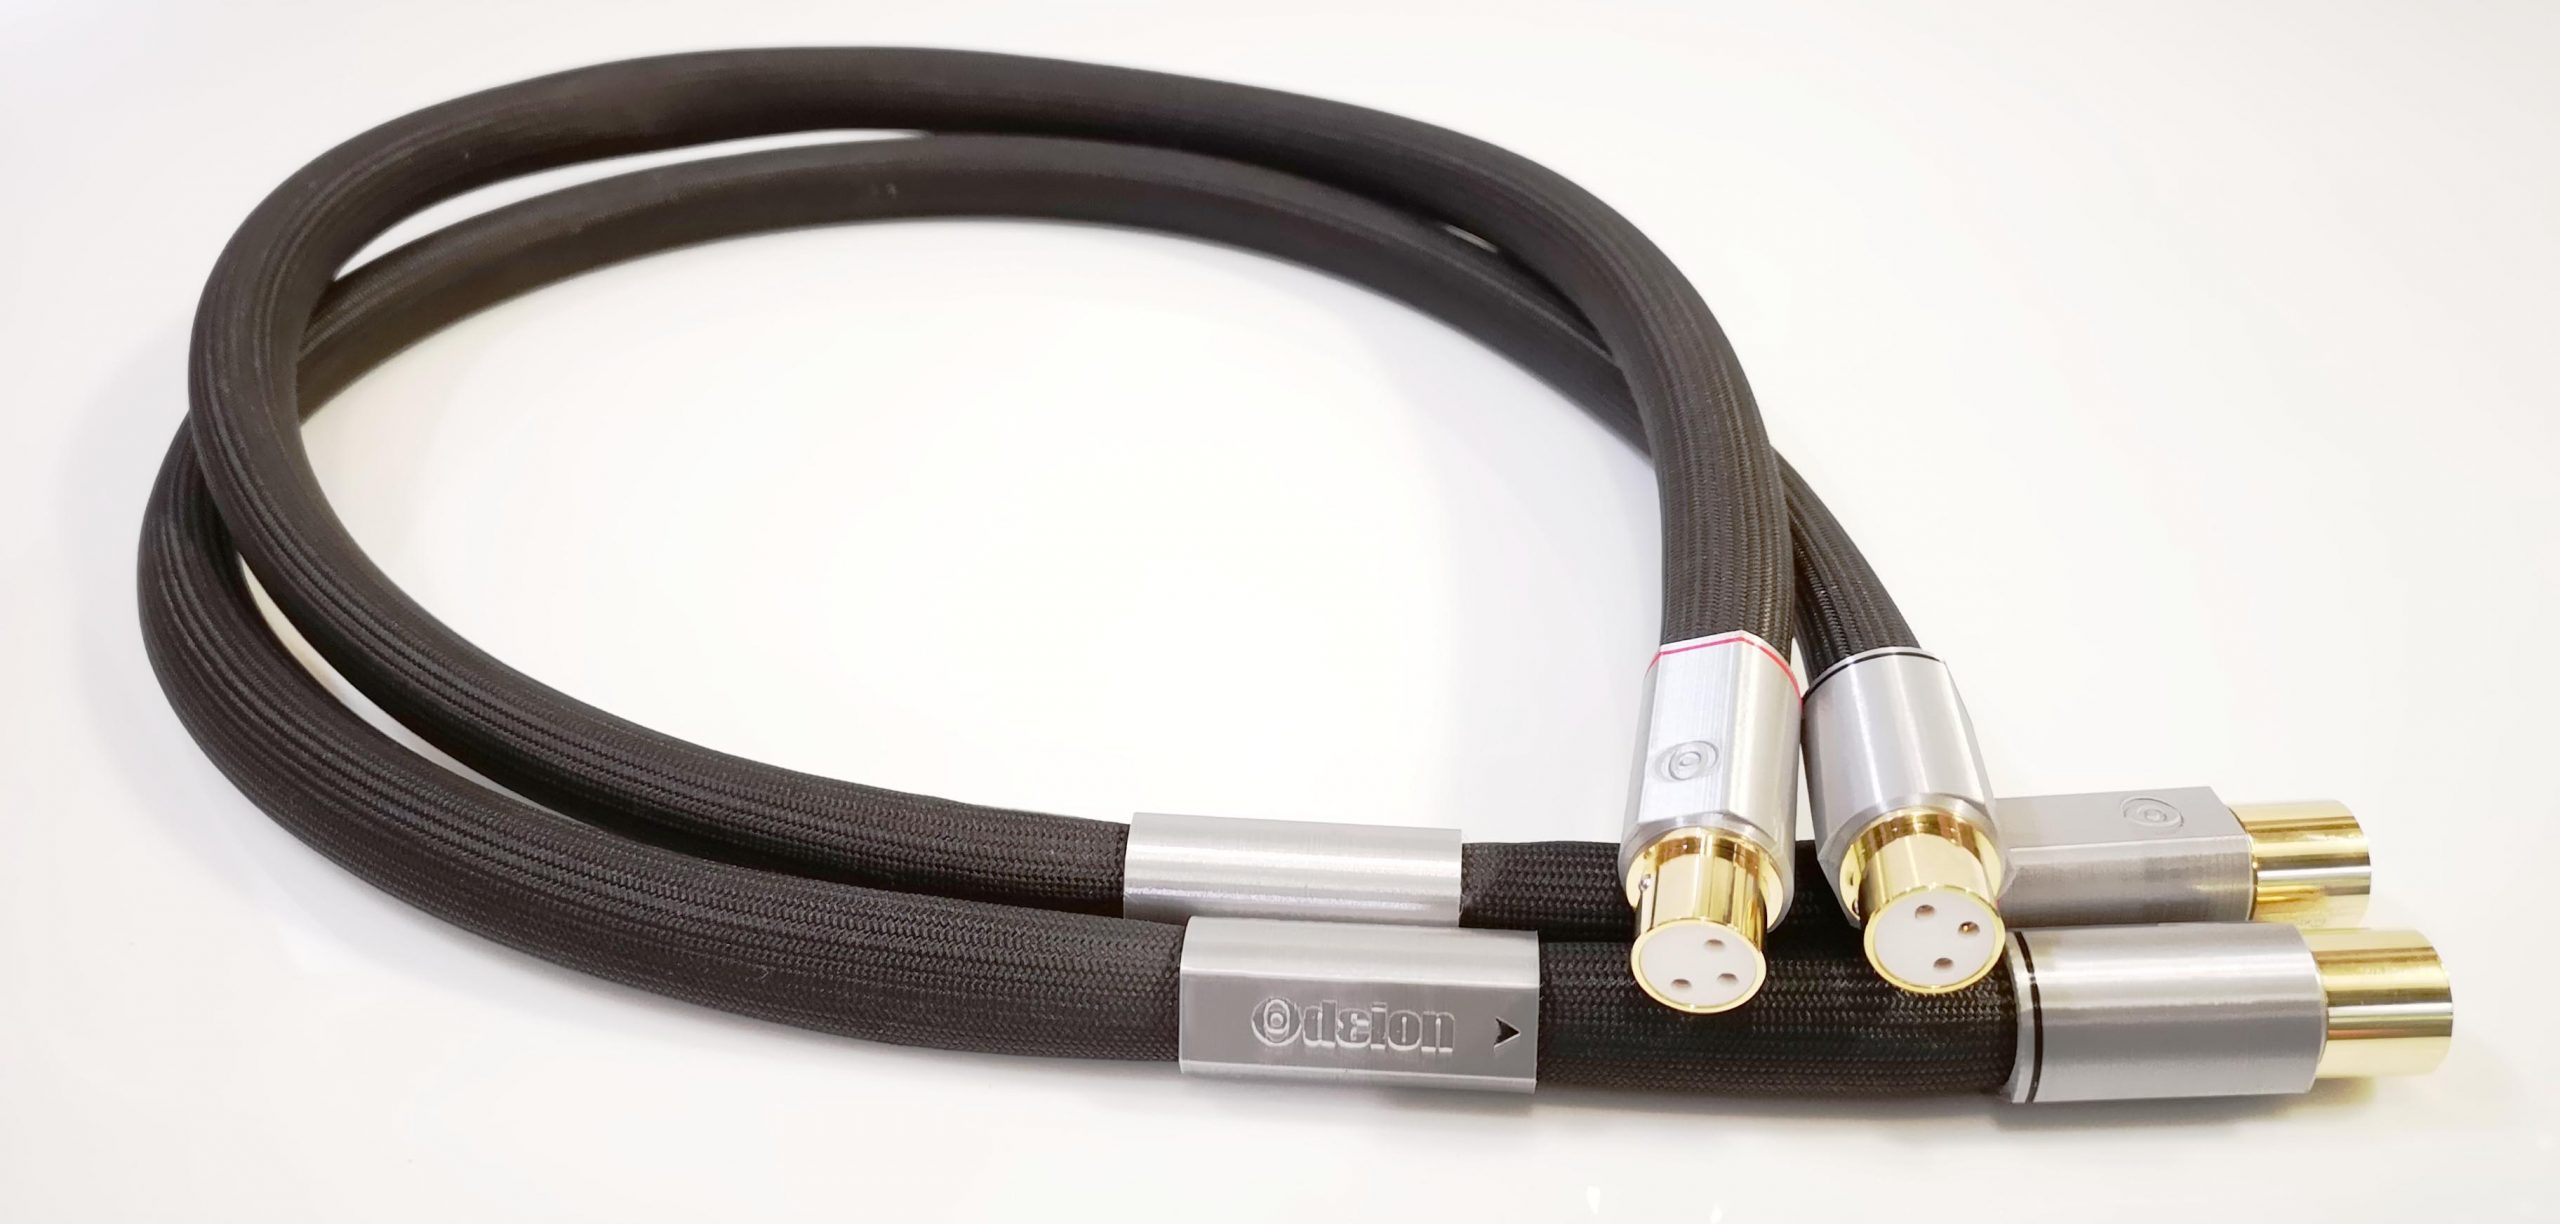 Sigma Modulation XLR interconnects Odeion Cables